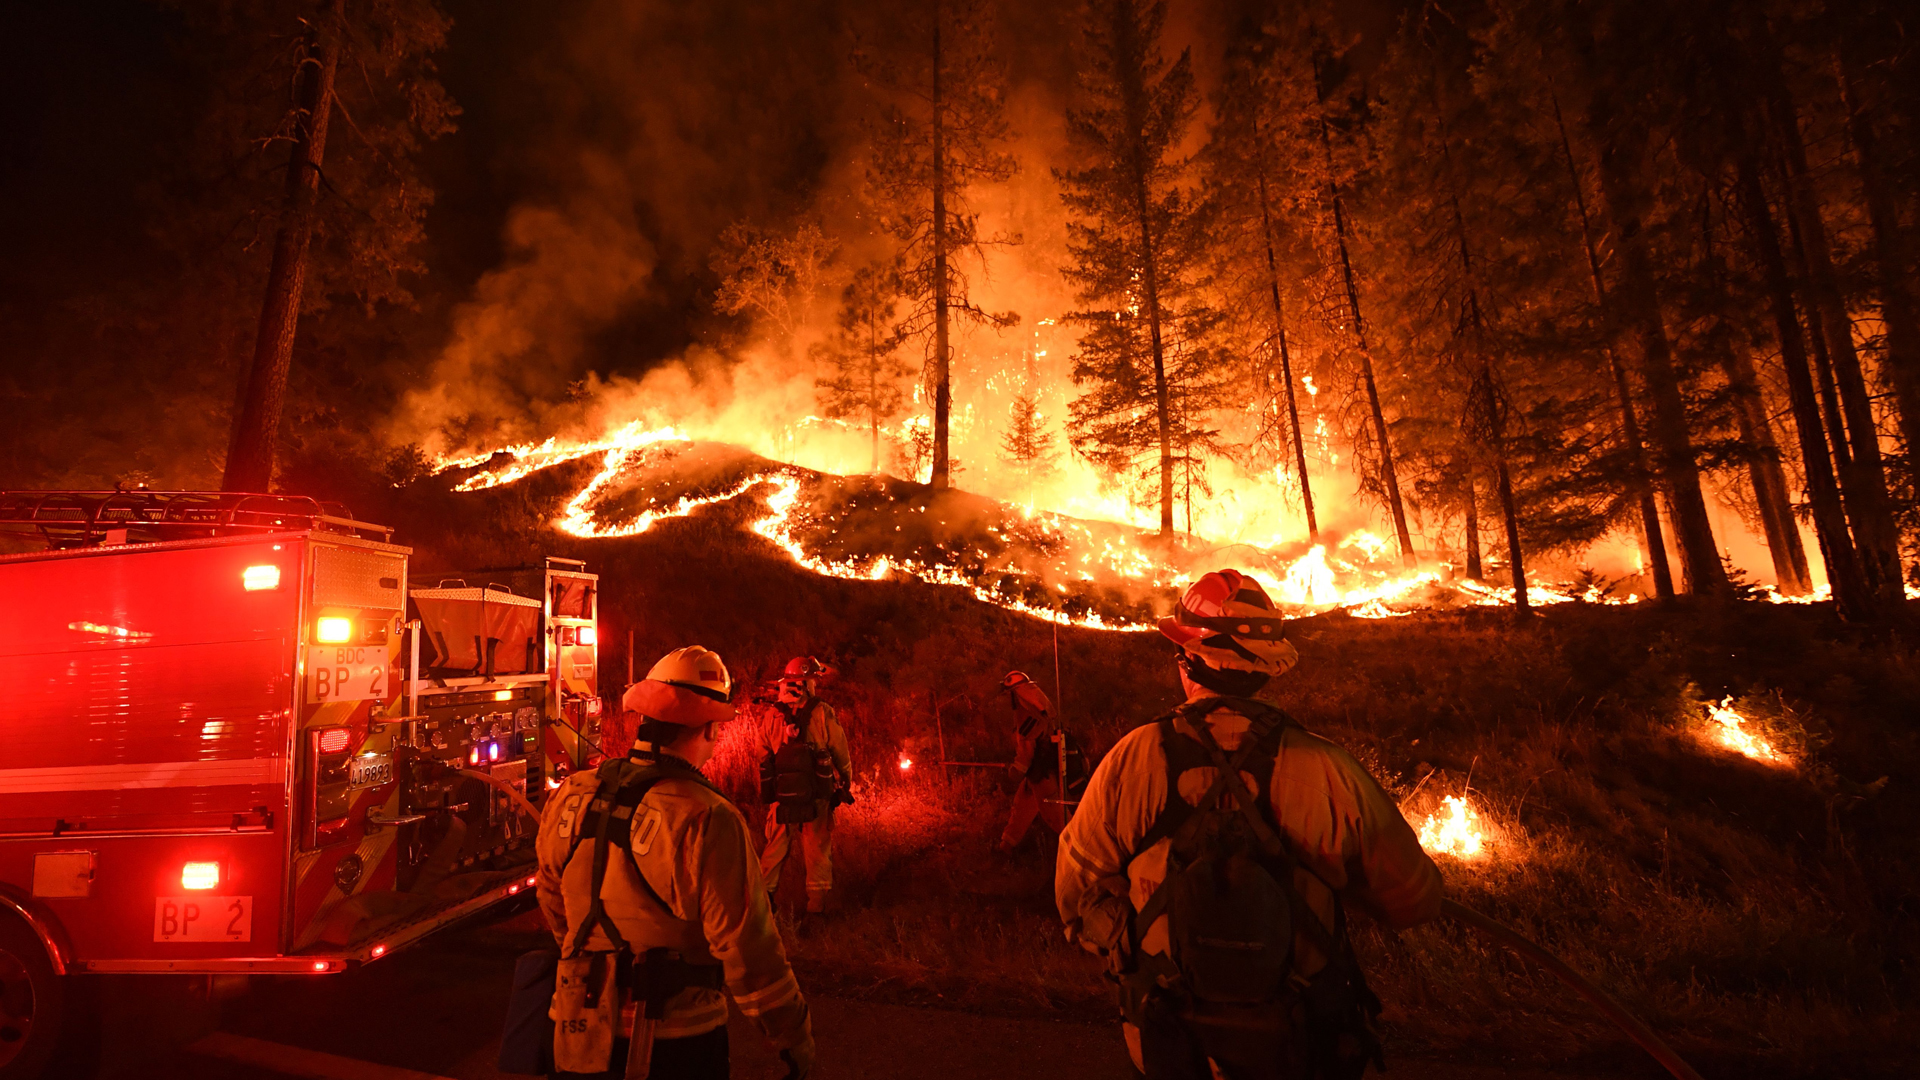 Firefighters try to control a back burn as the Carr Fire spreads toward the towns of Douglas City and Lewiston near Redding on July 31, 2018. (Credit: MARK RALSTON/AFP/Getty Images)